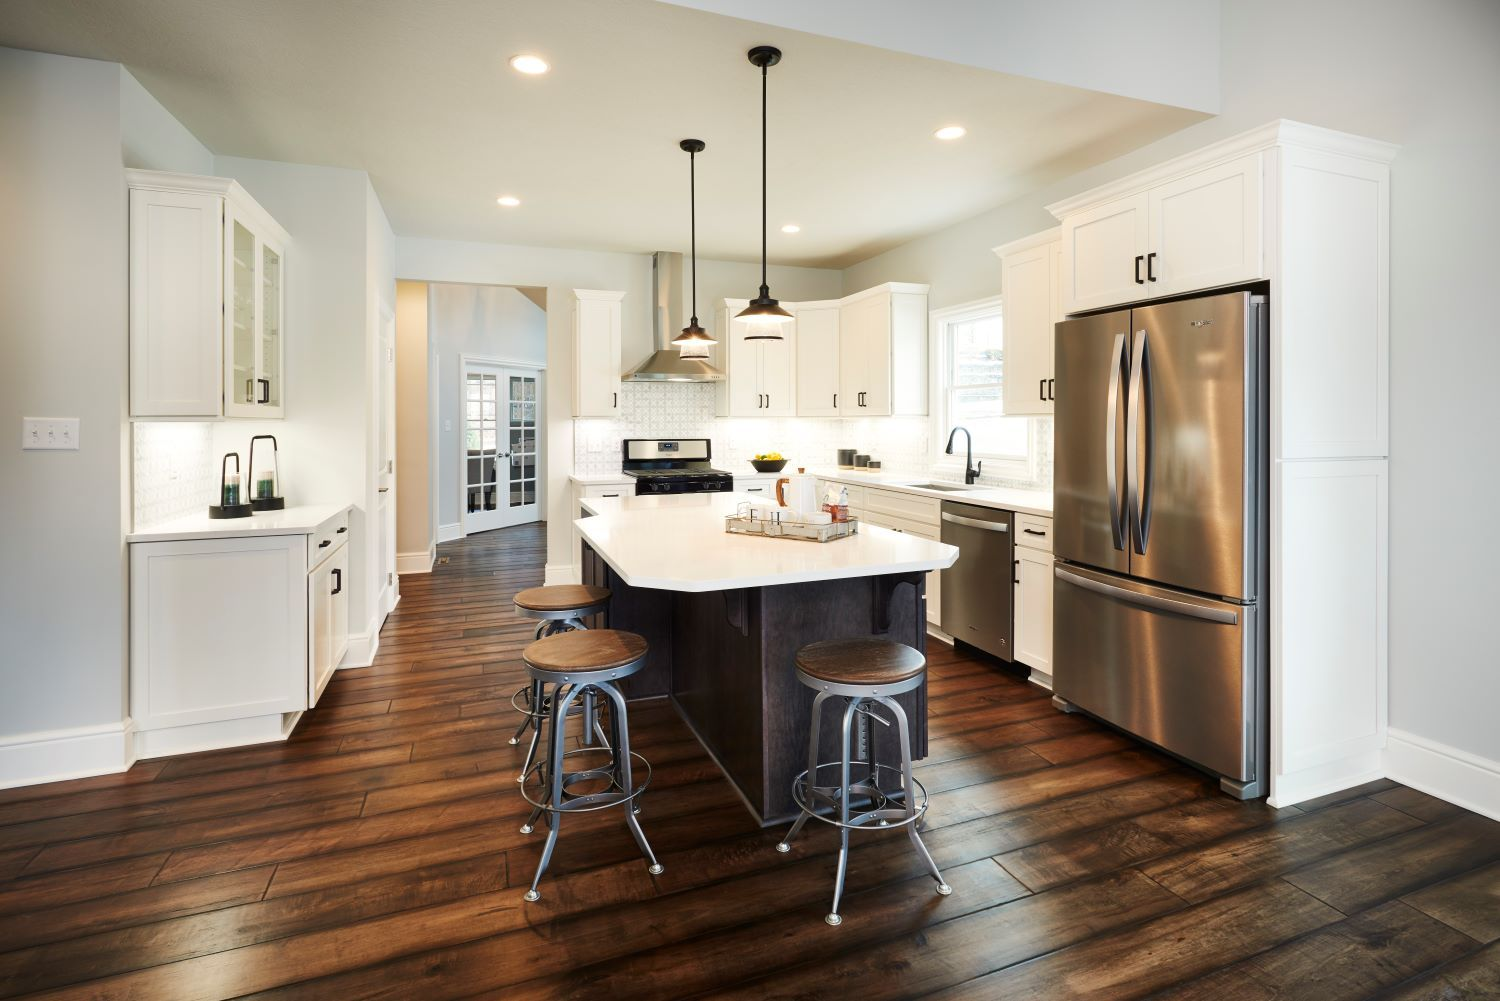 Kitchen featured in the Petersburg By Eddy Homes in Pittsburgh, PA